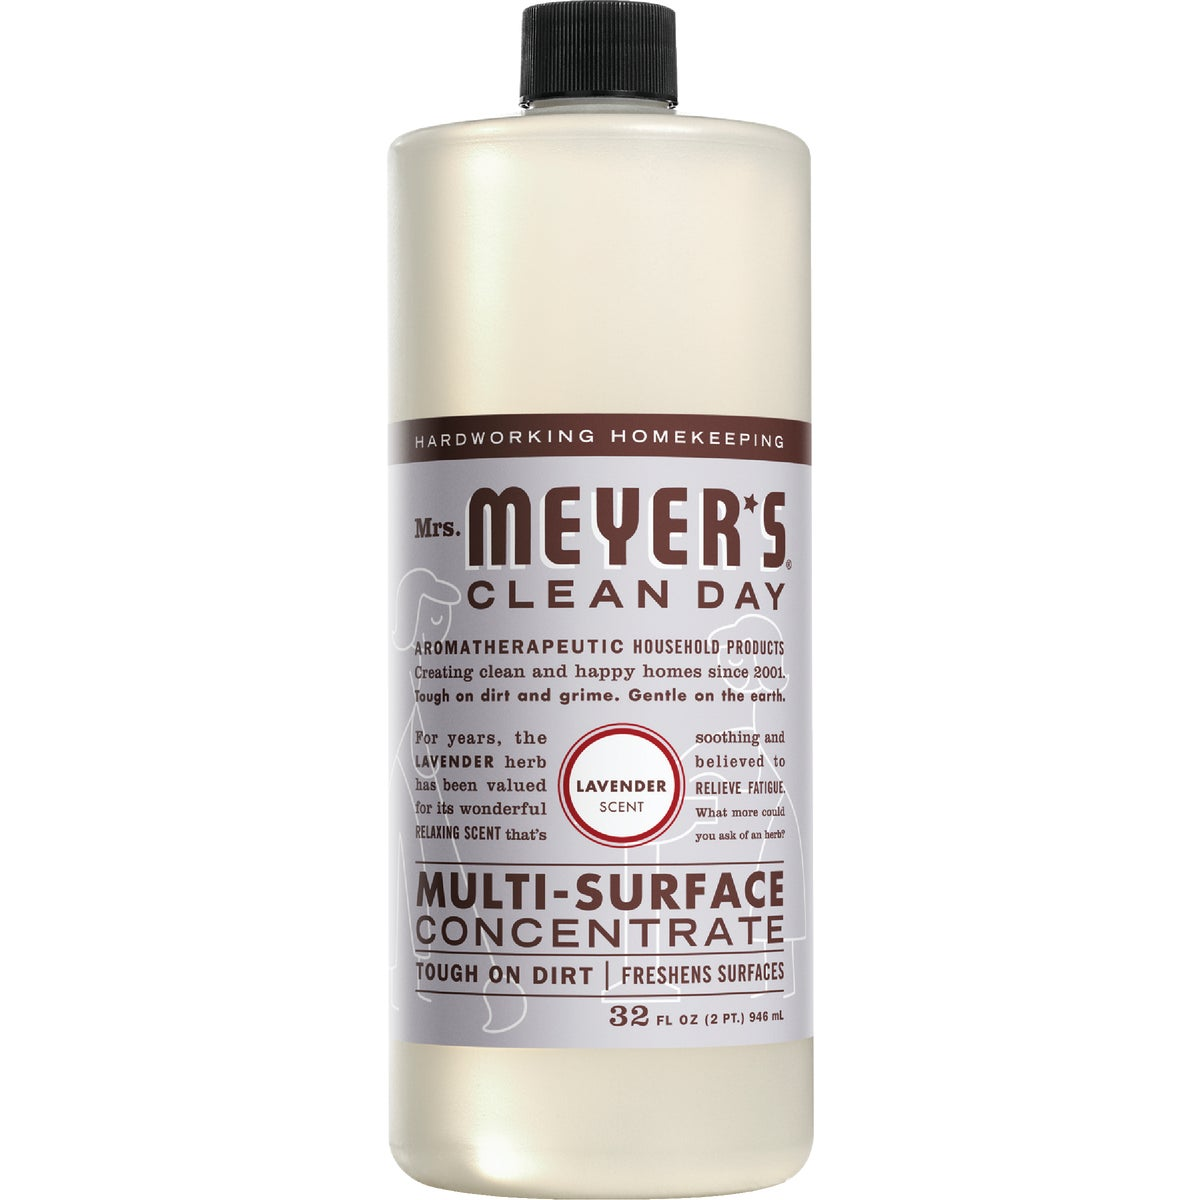 LAVNDR ALL PURP CLEANER - 11116 by Mrs Meyers Clean Day